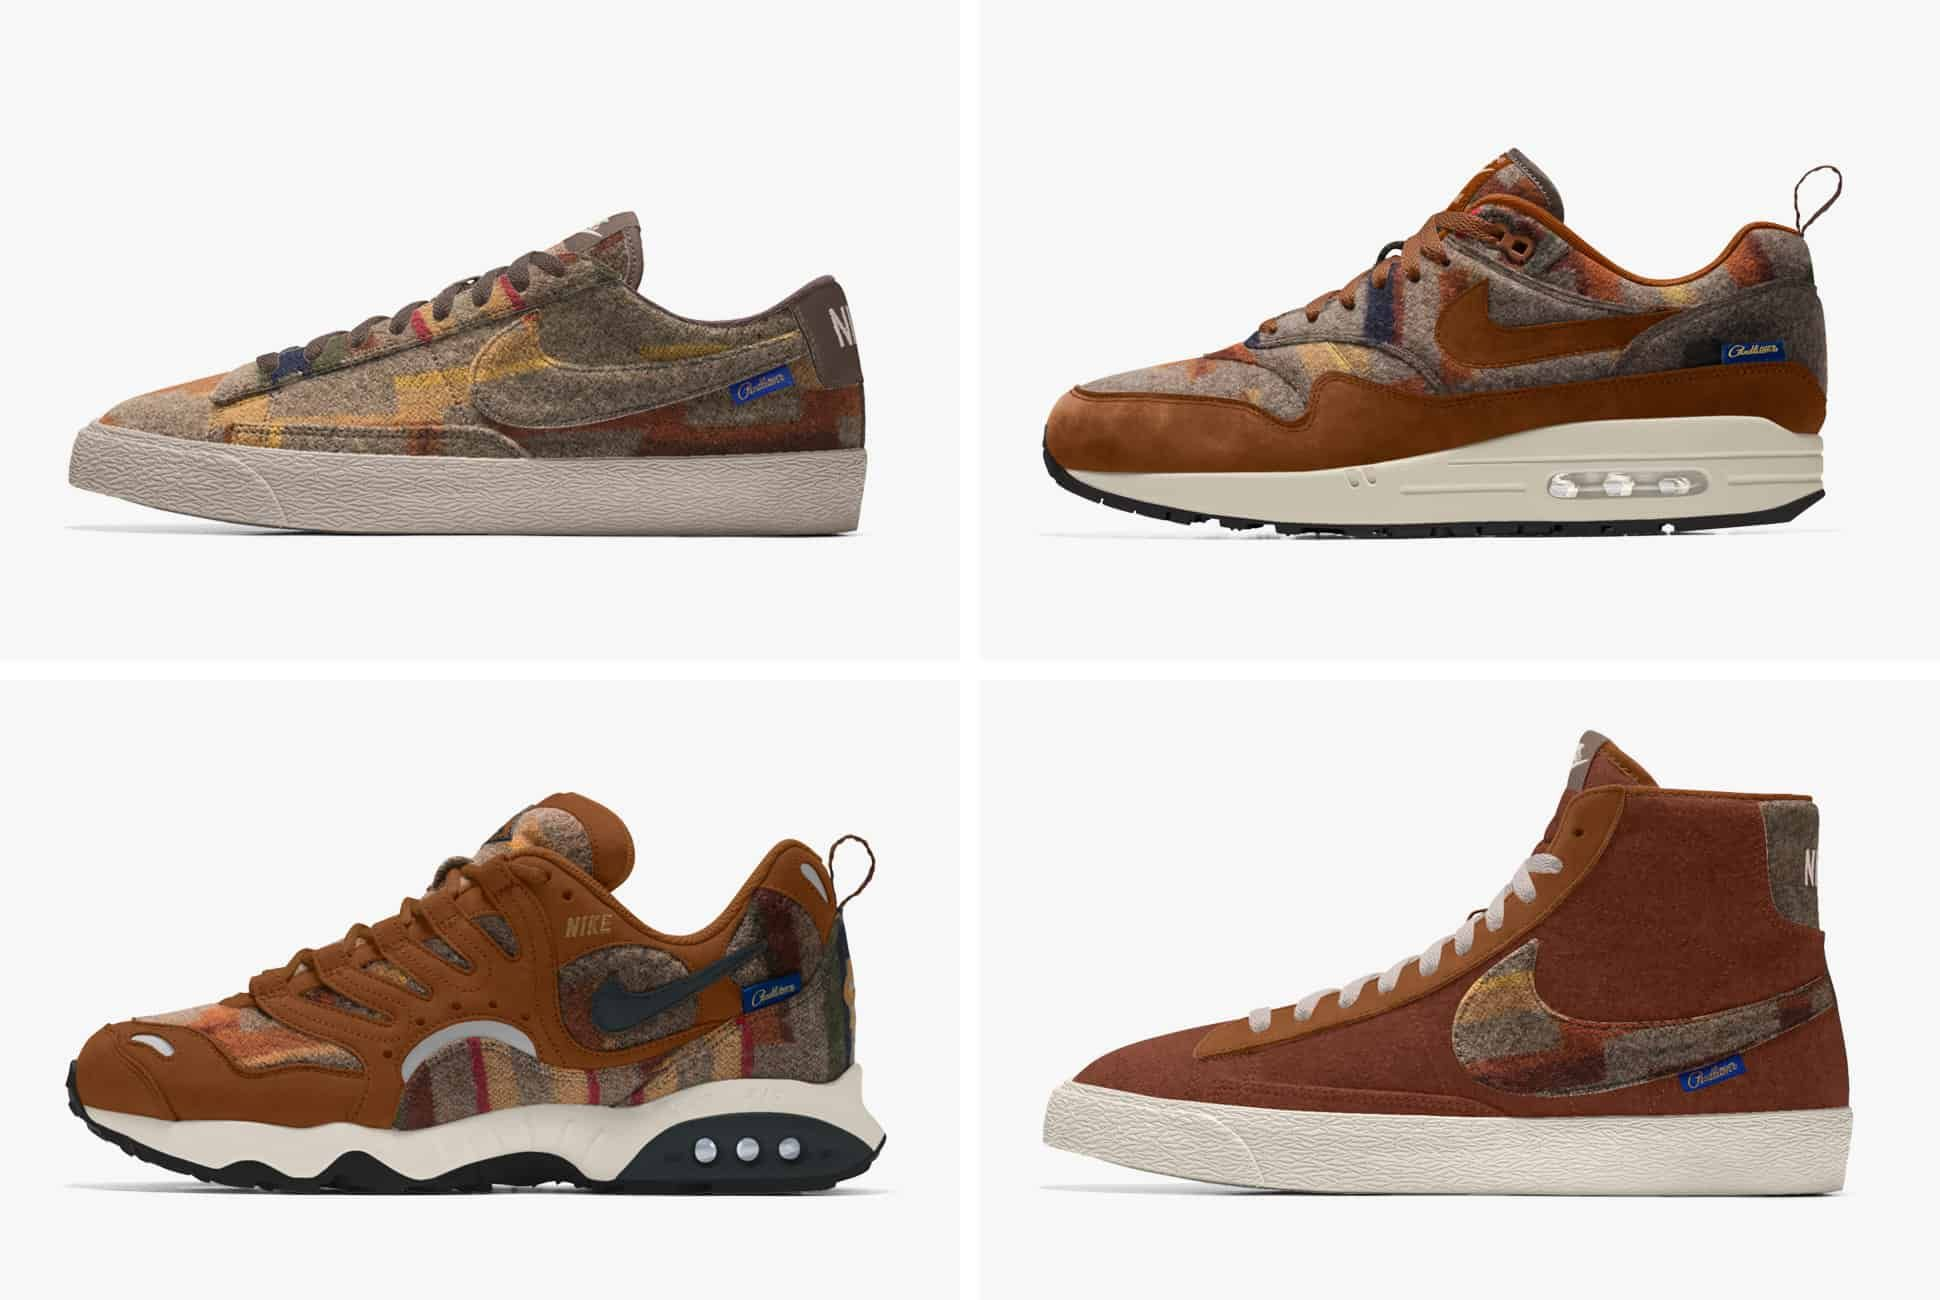 These New Kicks from Pendleton and Nike